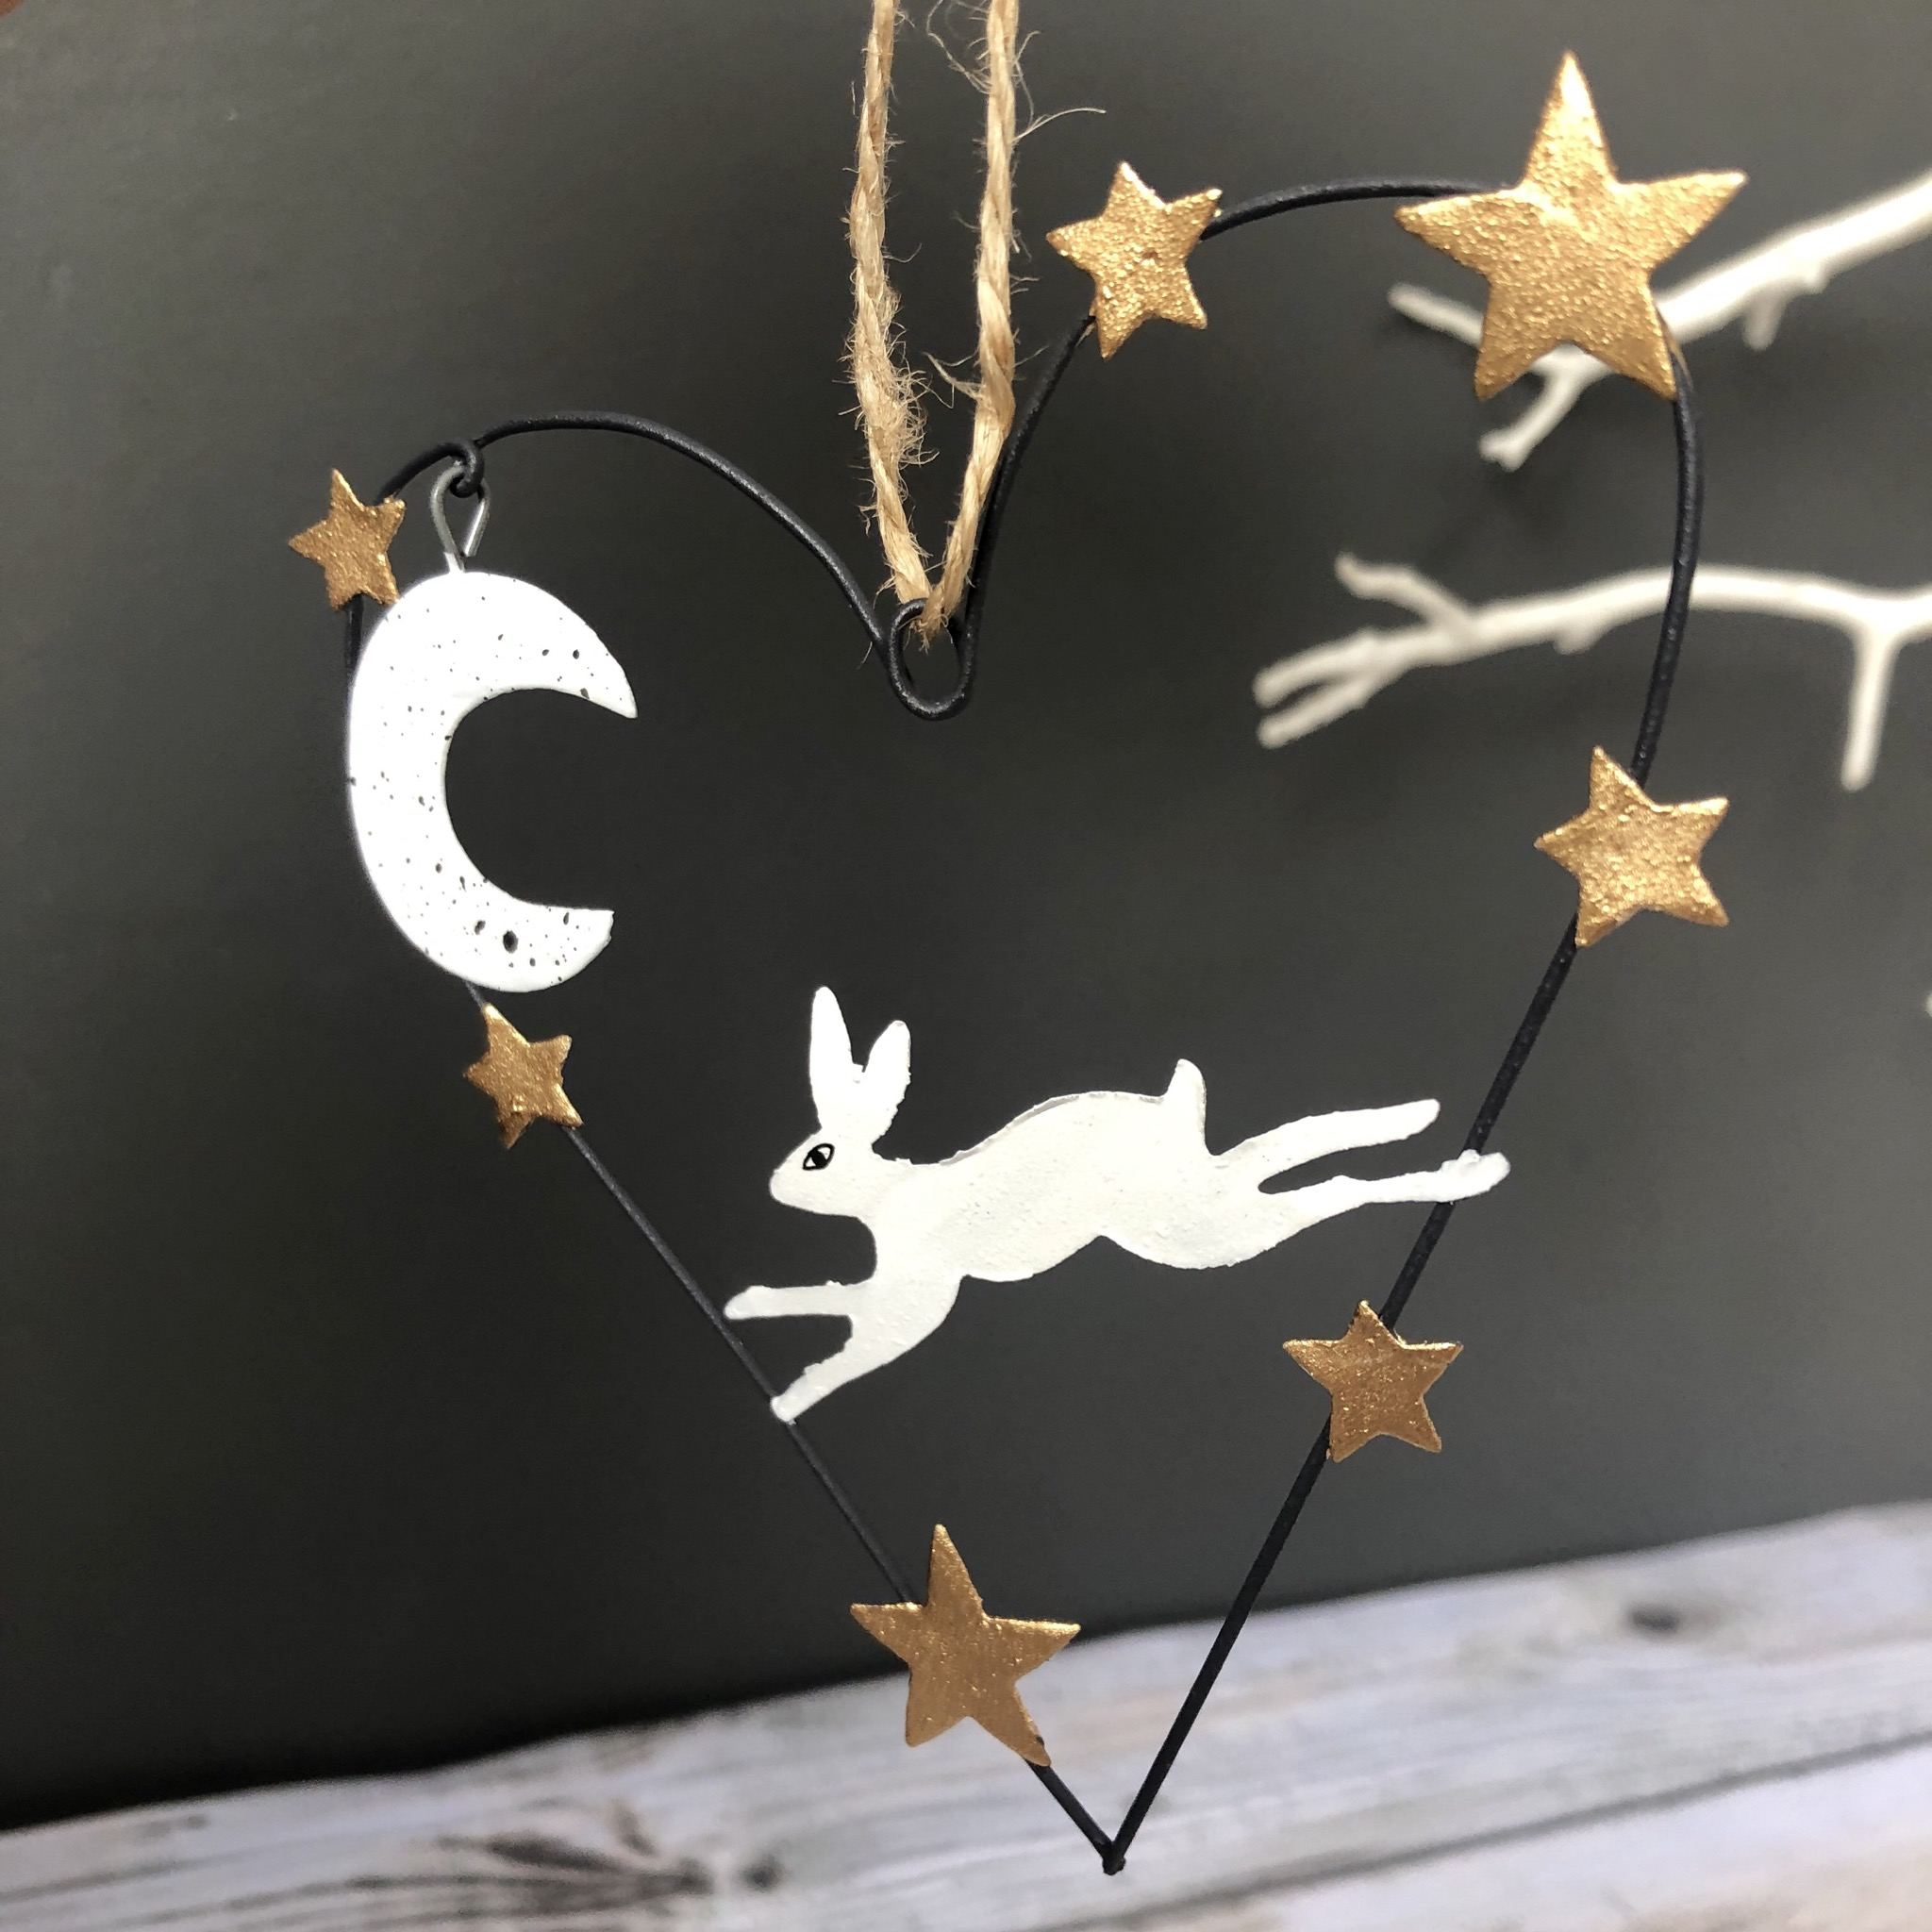 Artic hare heart hanging Christmas decoration by shoeless joe